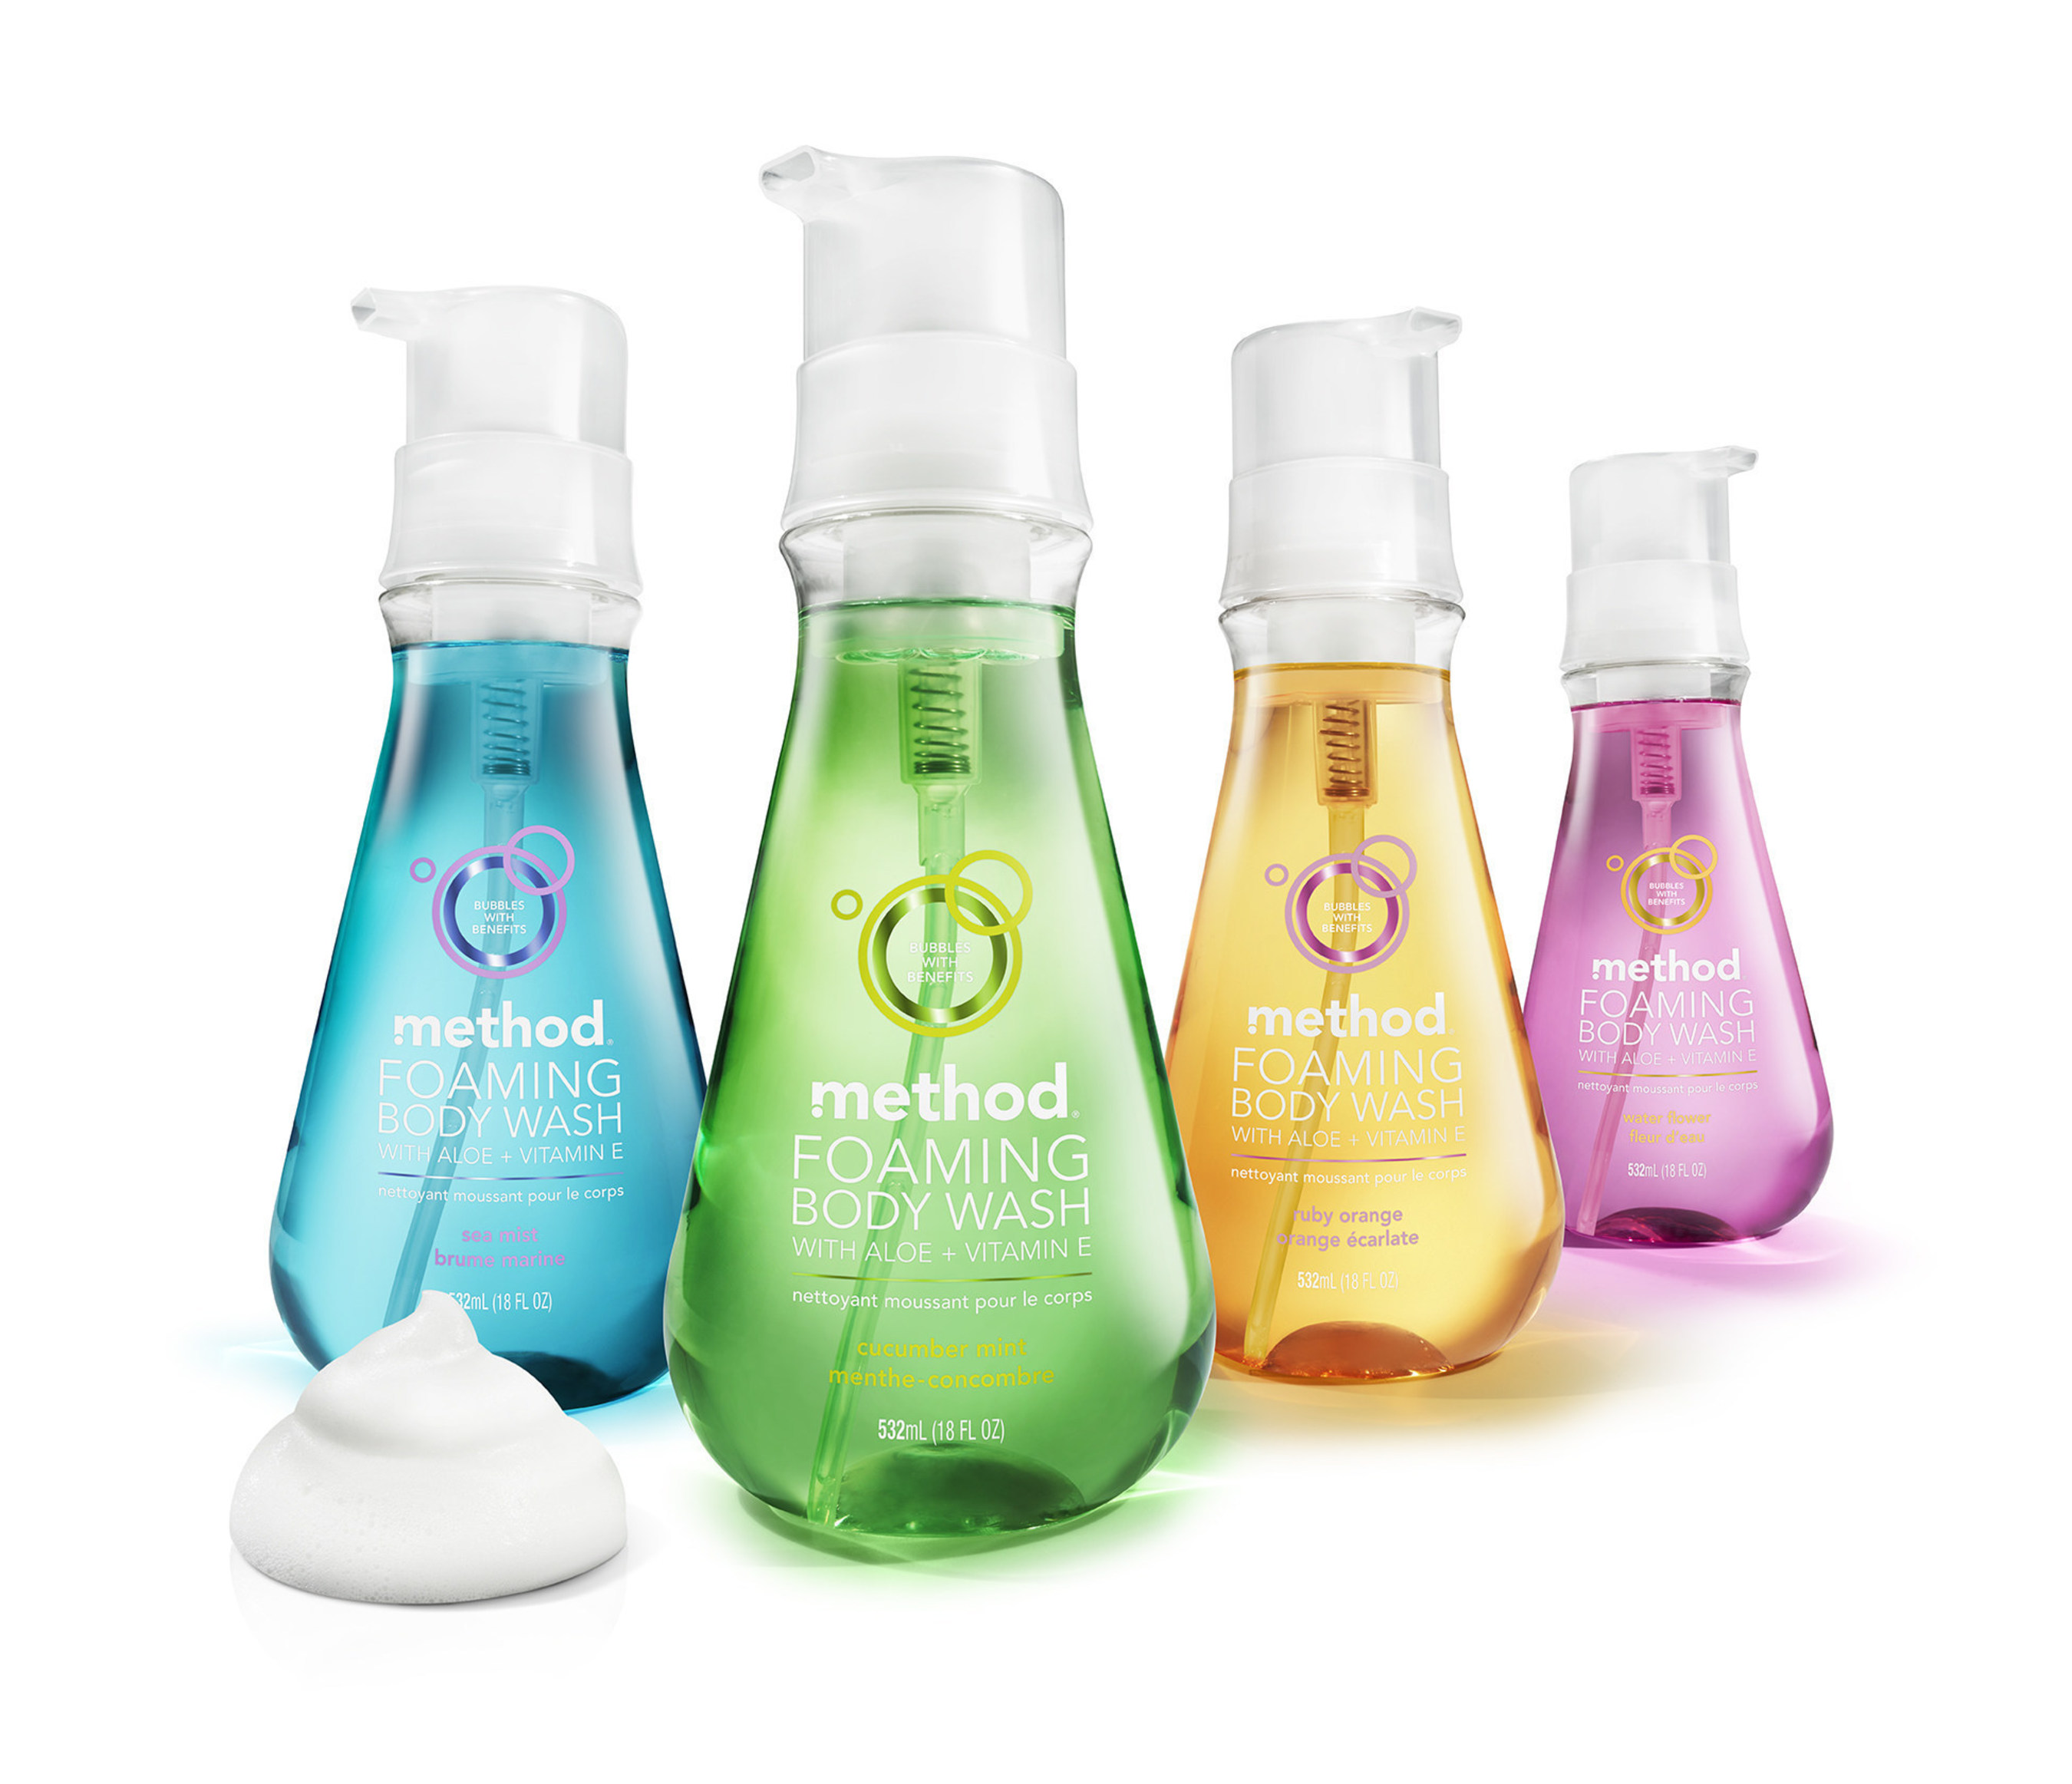 method's new foaming body wash delivers instant handfuls of luxurious foam in four fresh scents: sea mist, cucumber mint, ruby orange and water flower